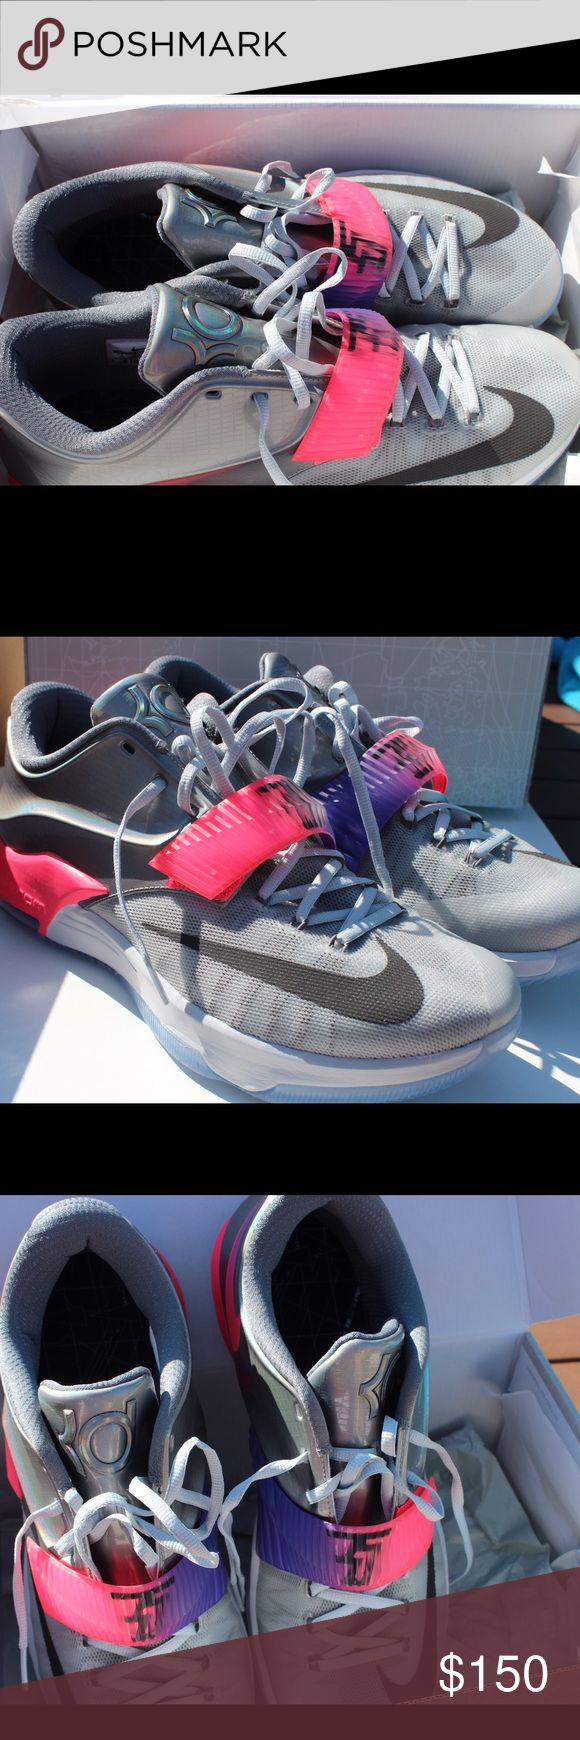 KD 7 All Star New in box, unworn, 10/10 condition Nike Shoes Sneakers